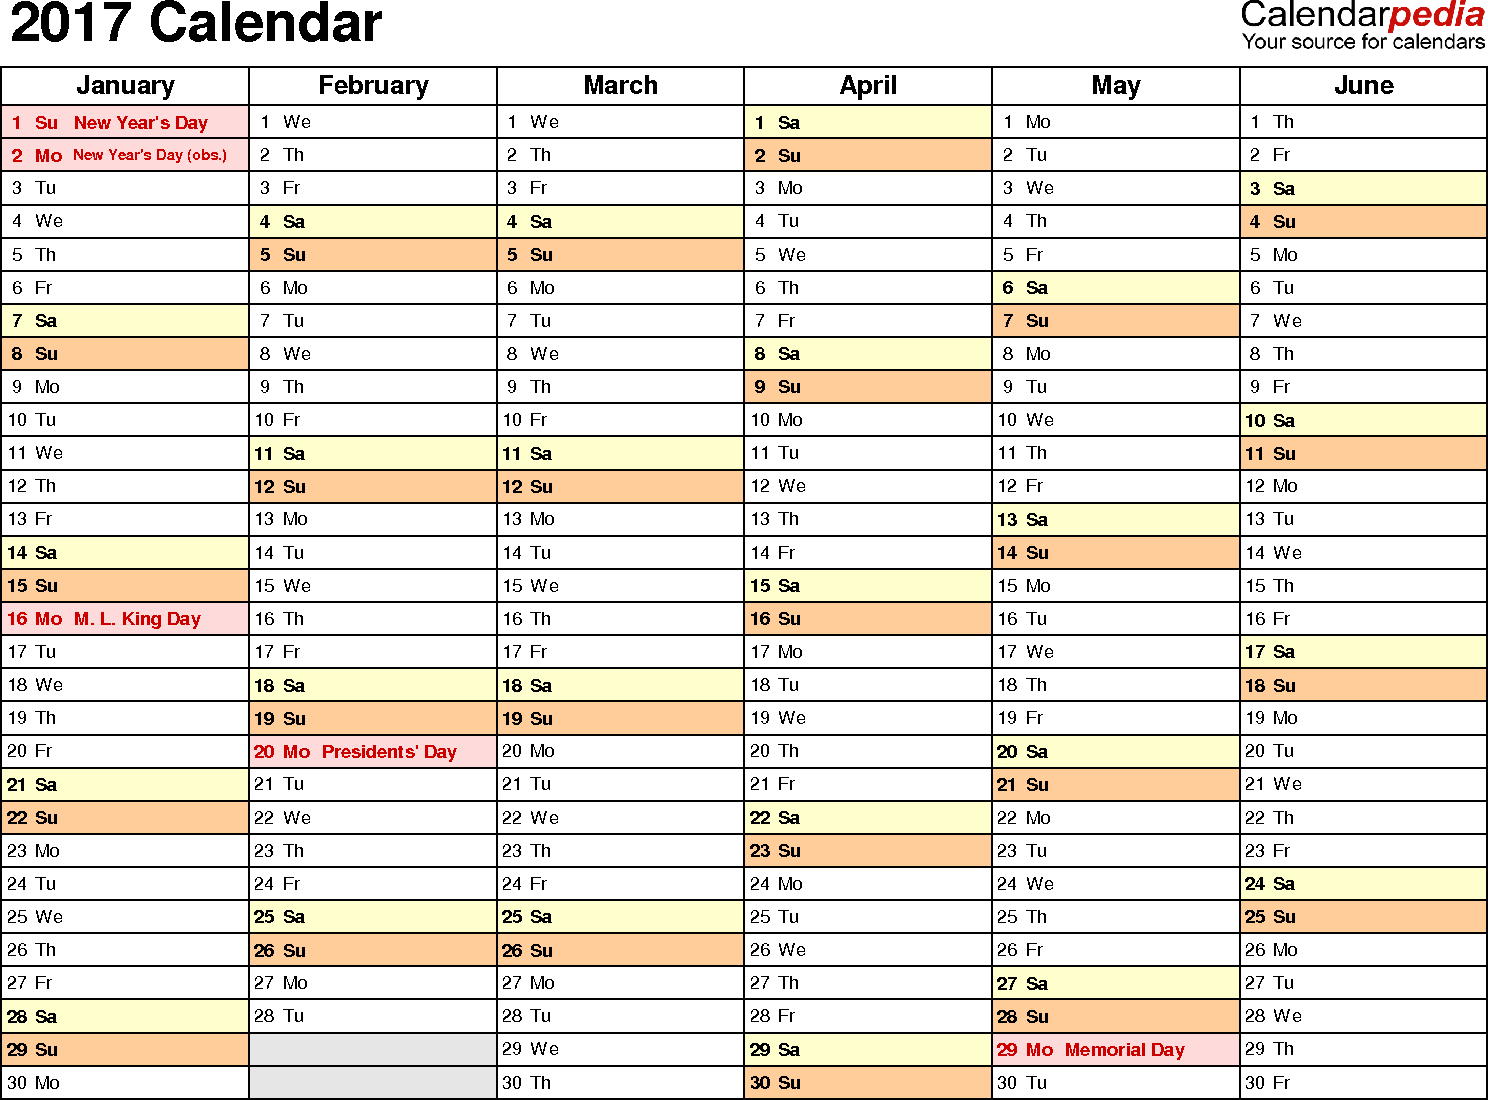 Ediblewildsus  Pleasing  Calendar  Download  Free Printable Excel Templates Xls With Excellent Template   Calendar For Excel Months Horizontally  Pages Landscape Orientation With Extraordinary Text Automatically Wraps Around Excel Also Greater Than Or Equal Excel In Addition How To Make Graph Excel And Counting Colored Cells In Excel As Well As If Statements In Excel  Additionally Runtime Error  Excel From Calendarpediacom With Ediblewildsus  Excellent  Calendar  Download  Free Printable Excel Templates Xls With Extraordinary Template   Calendar For Excel Months Horizontally  Pages Landscape Orientation And Pleasing Text Automatically Wraps Around Excel Also Greater Than Or Equal Excel In Addition How To Make Graph Excel From Calendarpediacom